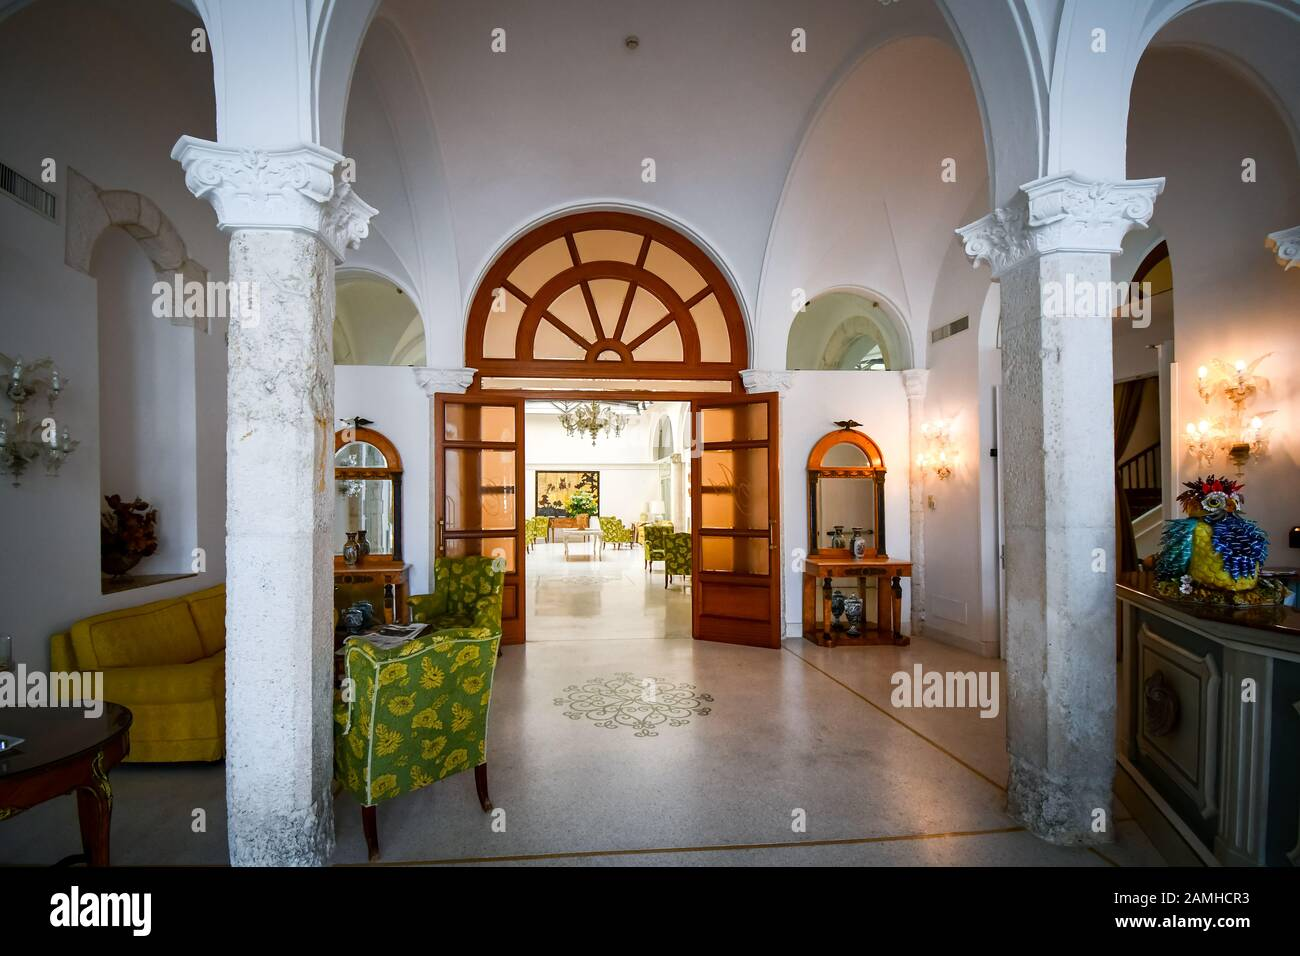 A typical interior view of the lobby and waiting room of a luxury hotel in Brindisi, on the Adriatic Coast of Southern Italy. Stock Photo